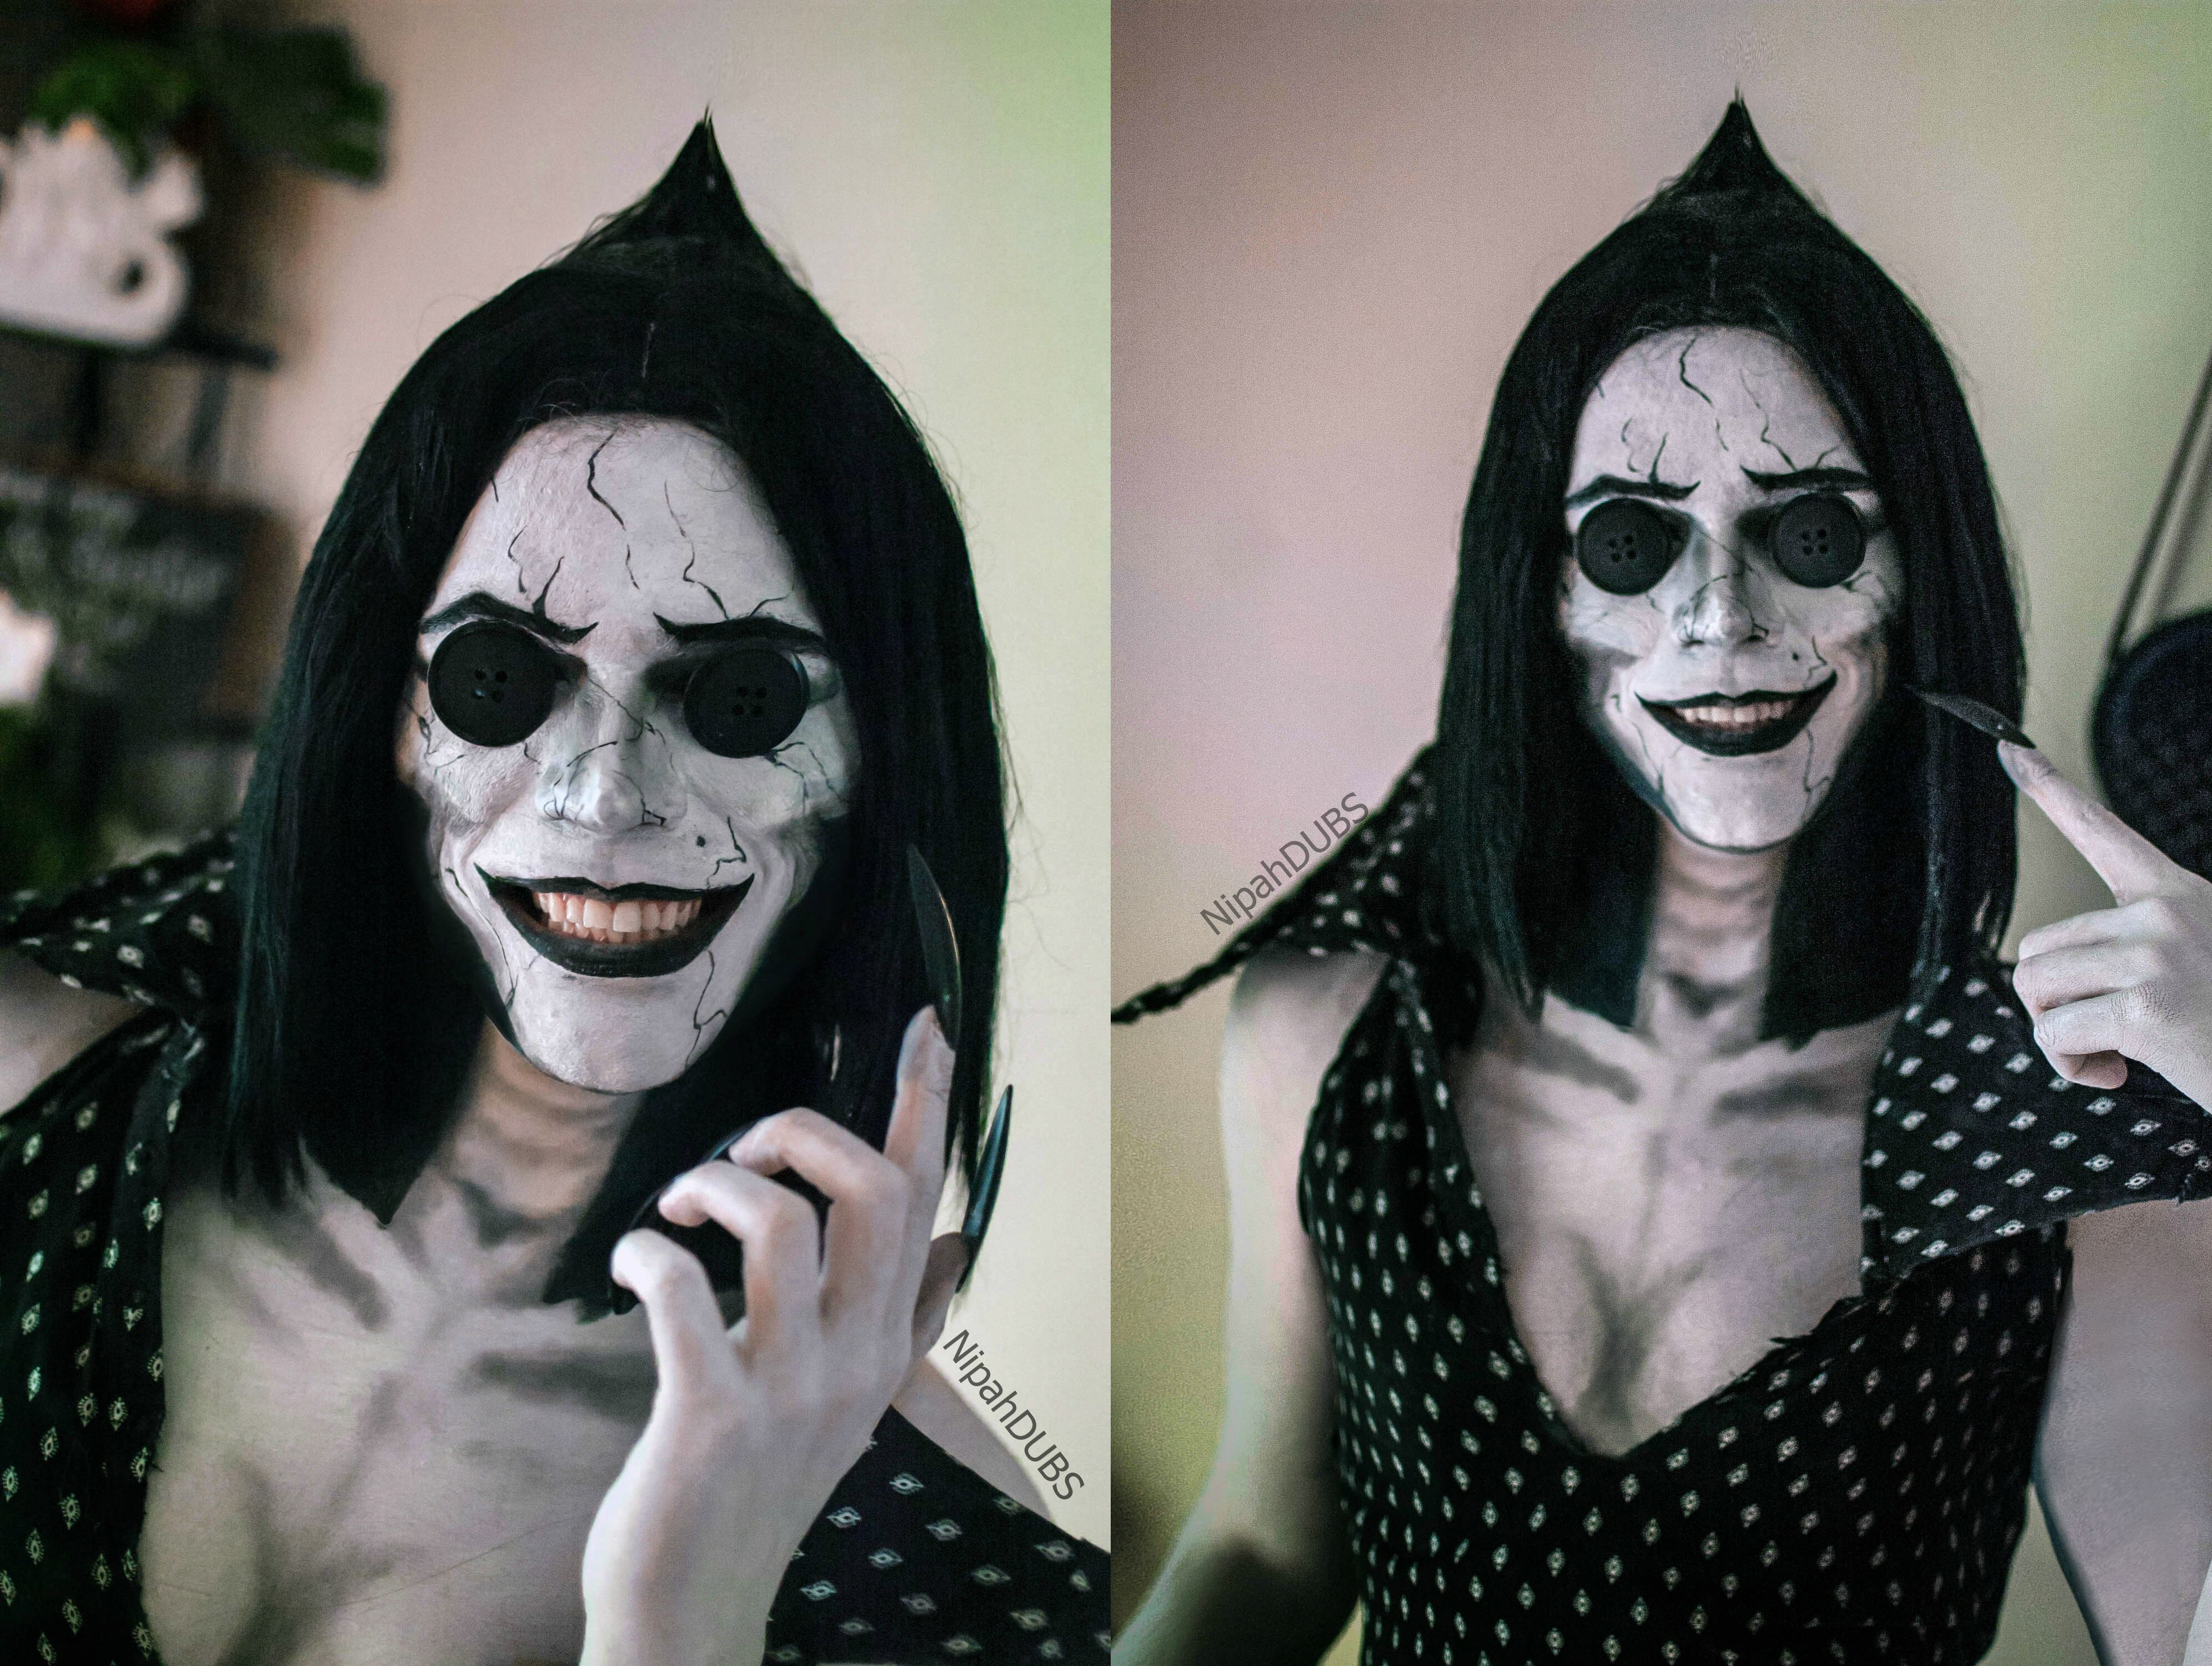 [self] My Other Mother cosplay from Coraline cosplay http